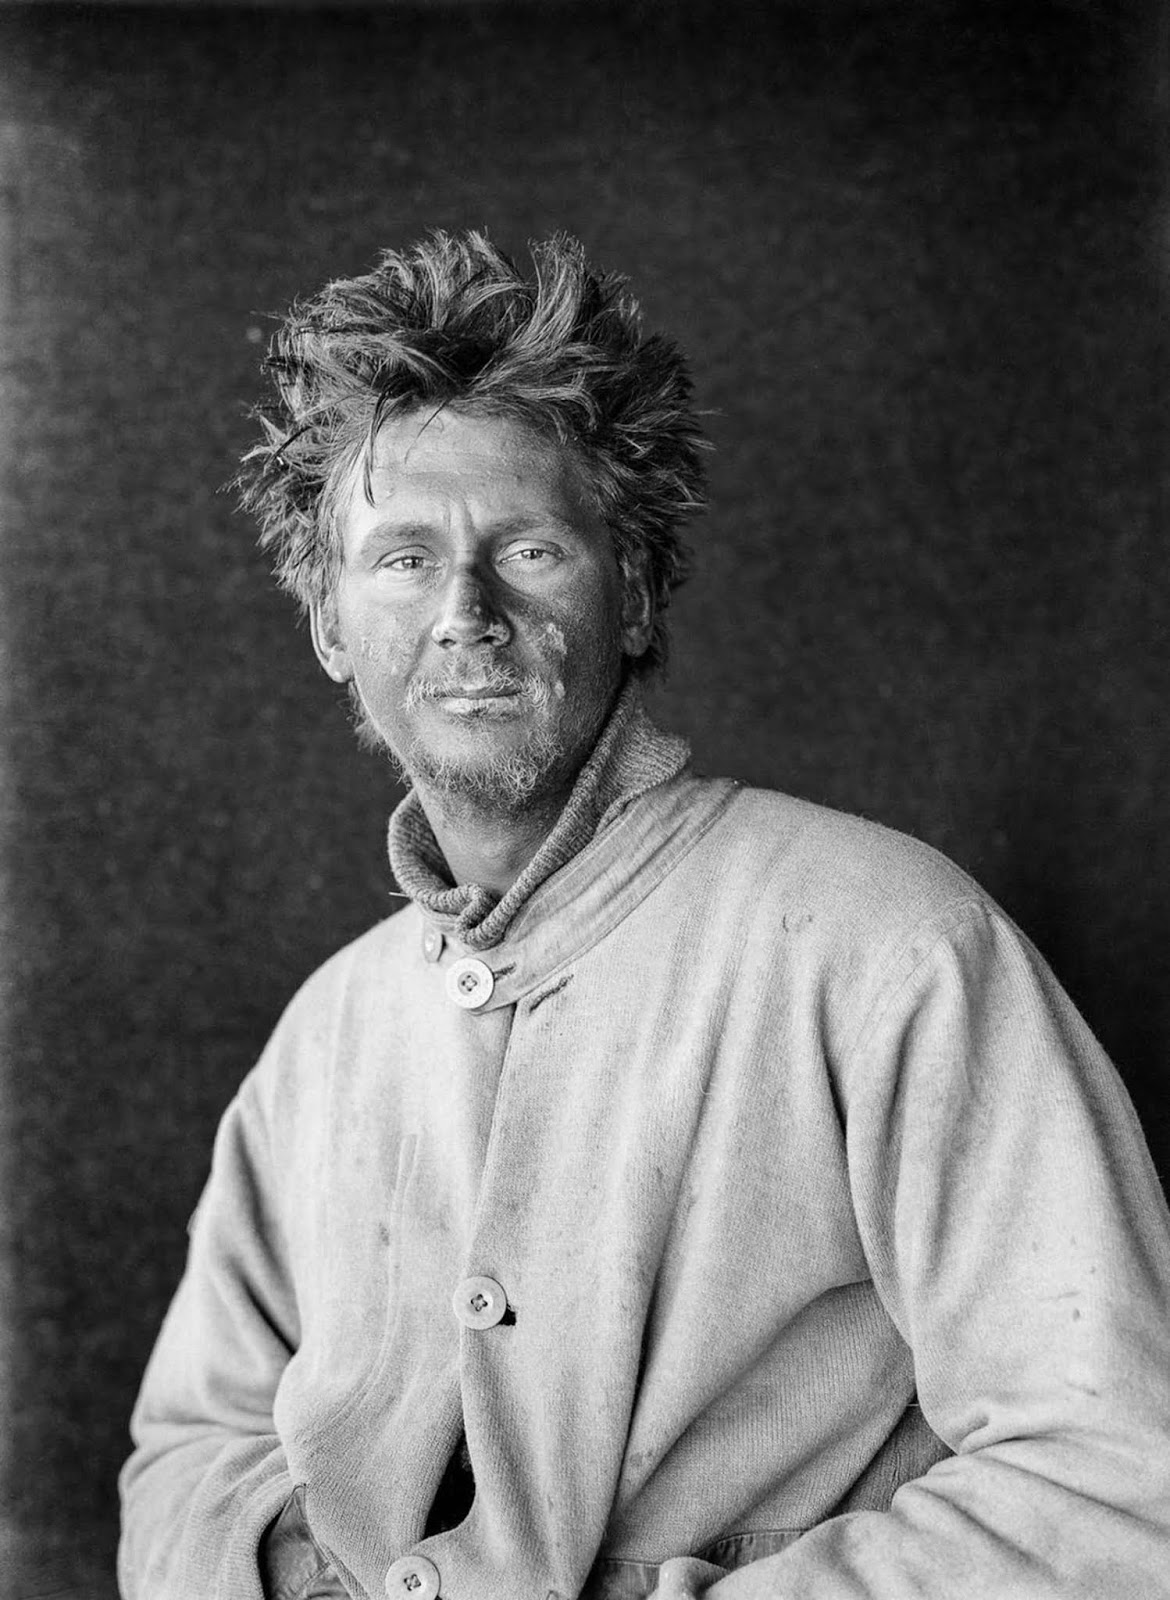 A frostbitten Charles Wright at camp after returning from the Great Ice Barrier as part of the first support party aiding Scott's push to the South Pole. January 1912.